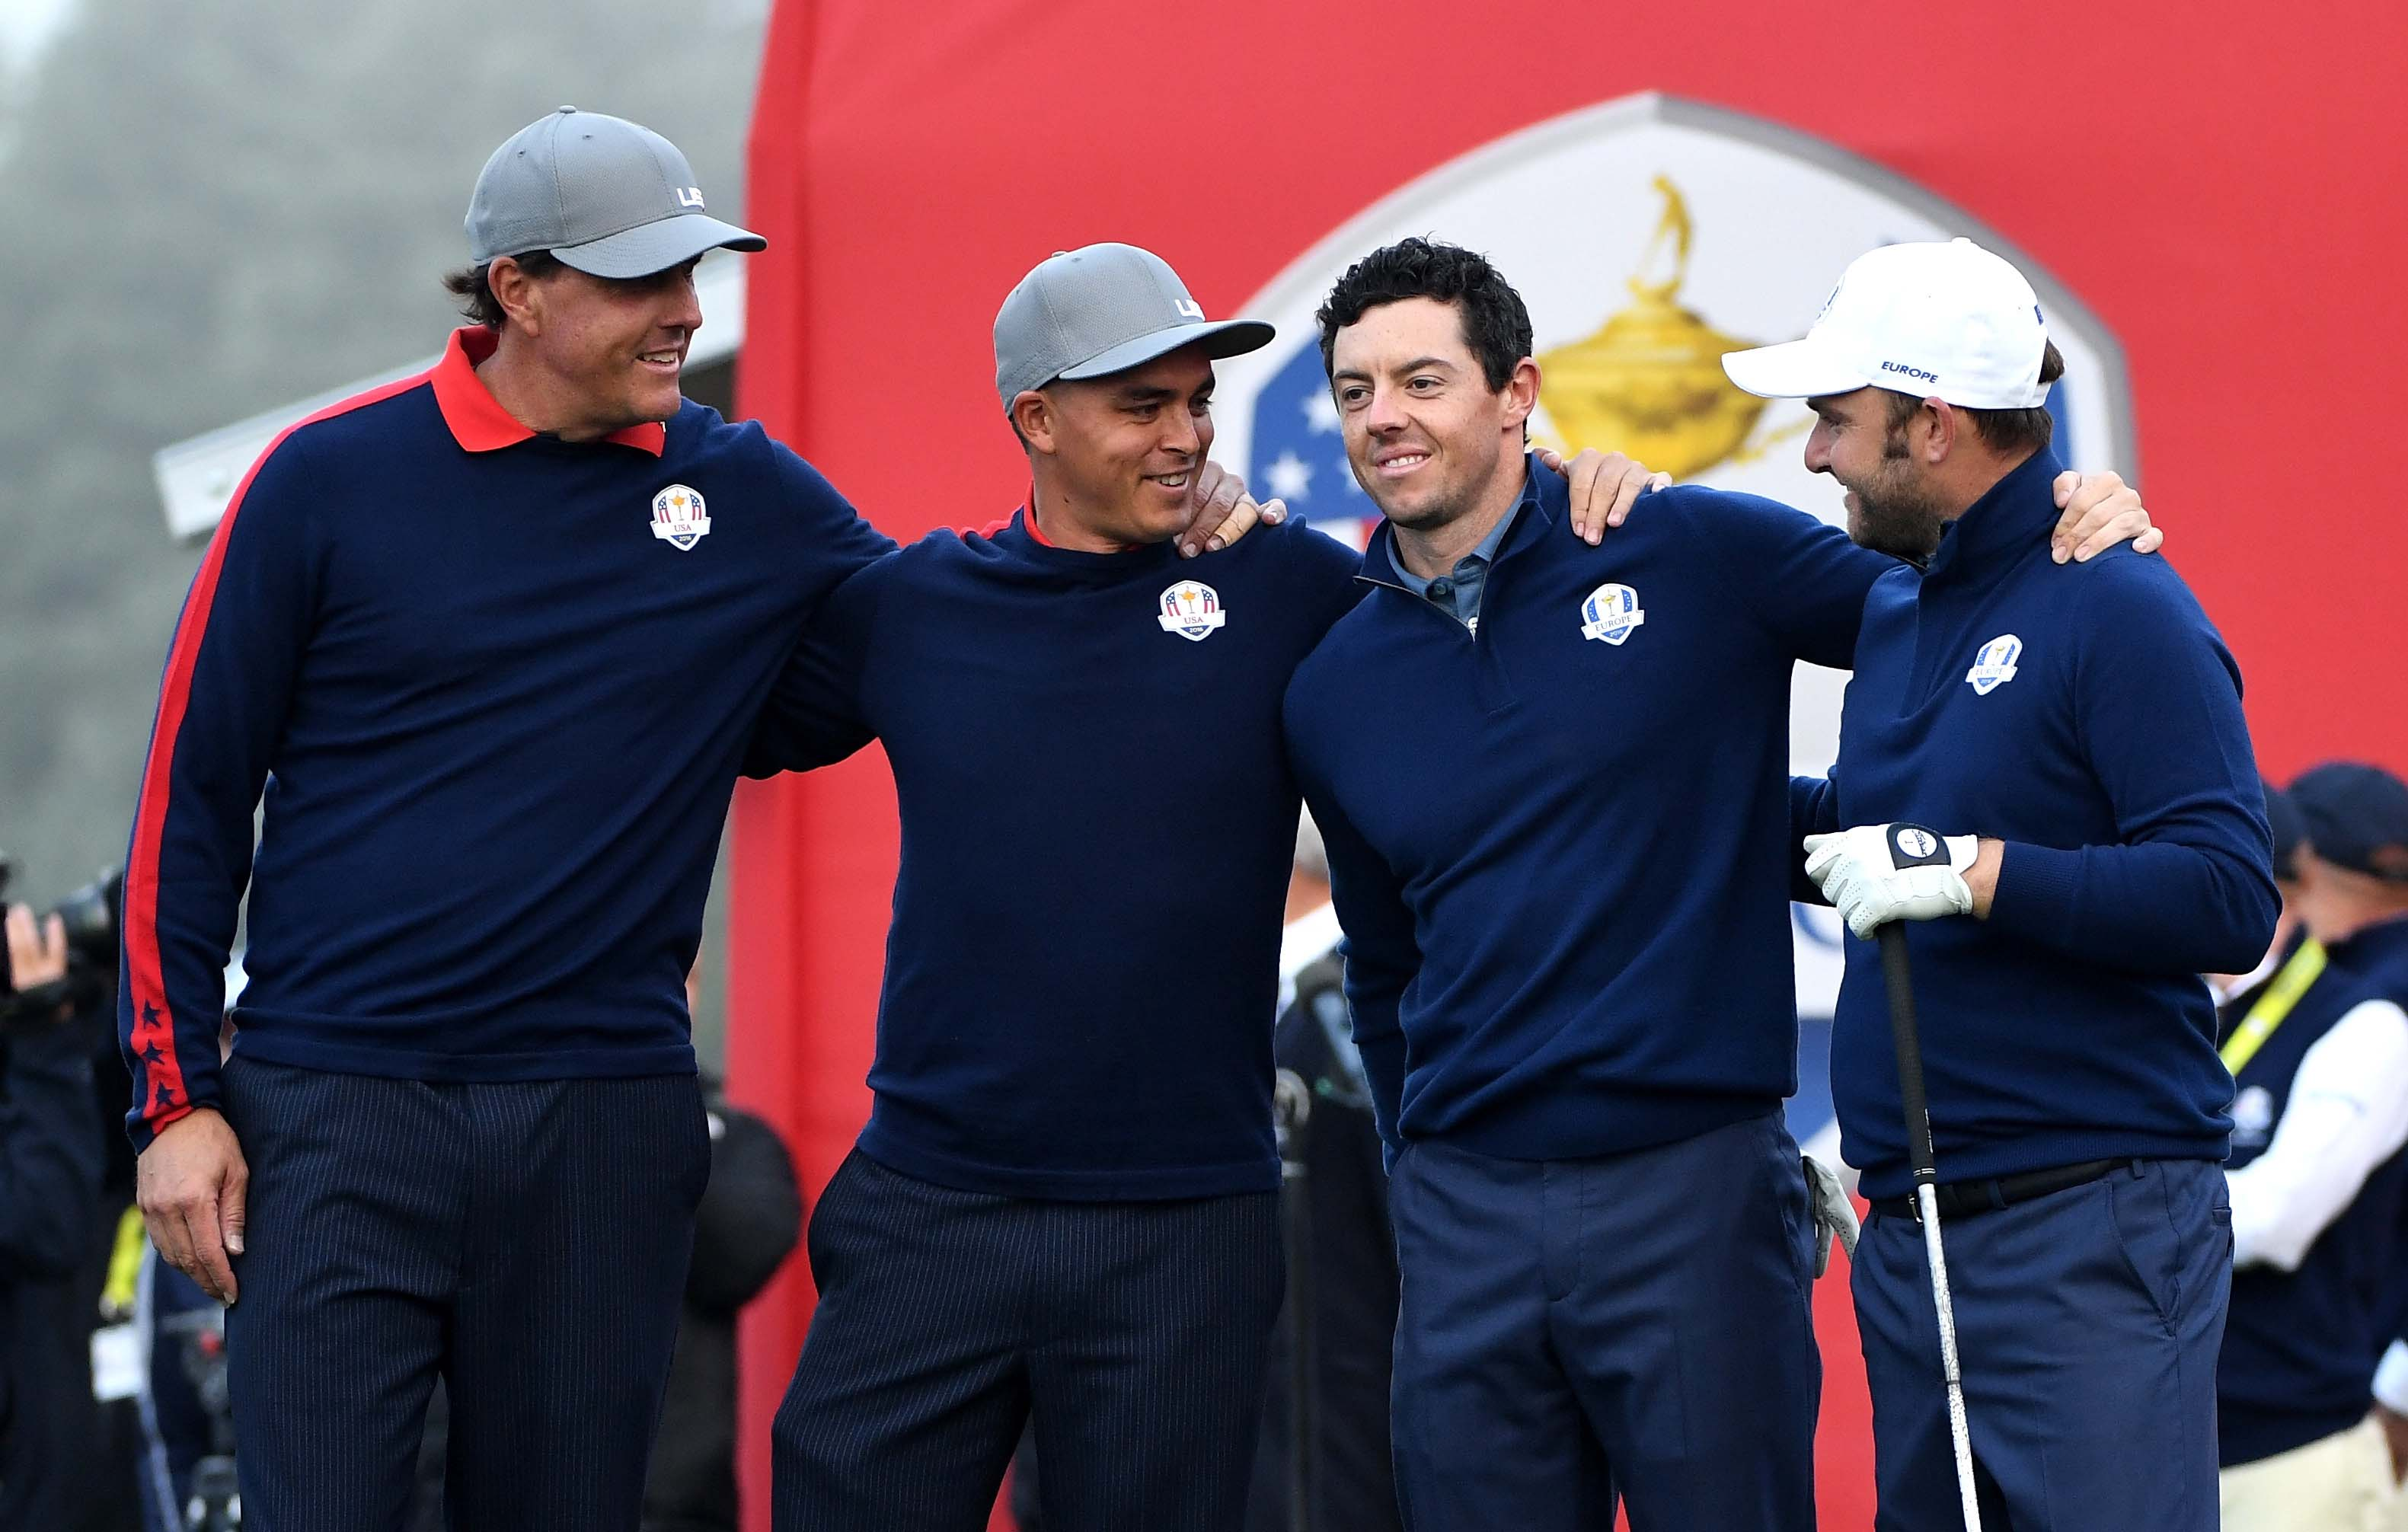 Phil Mickelson, Rickie Fowler, Rory McIlroy and Andy Sullivan